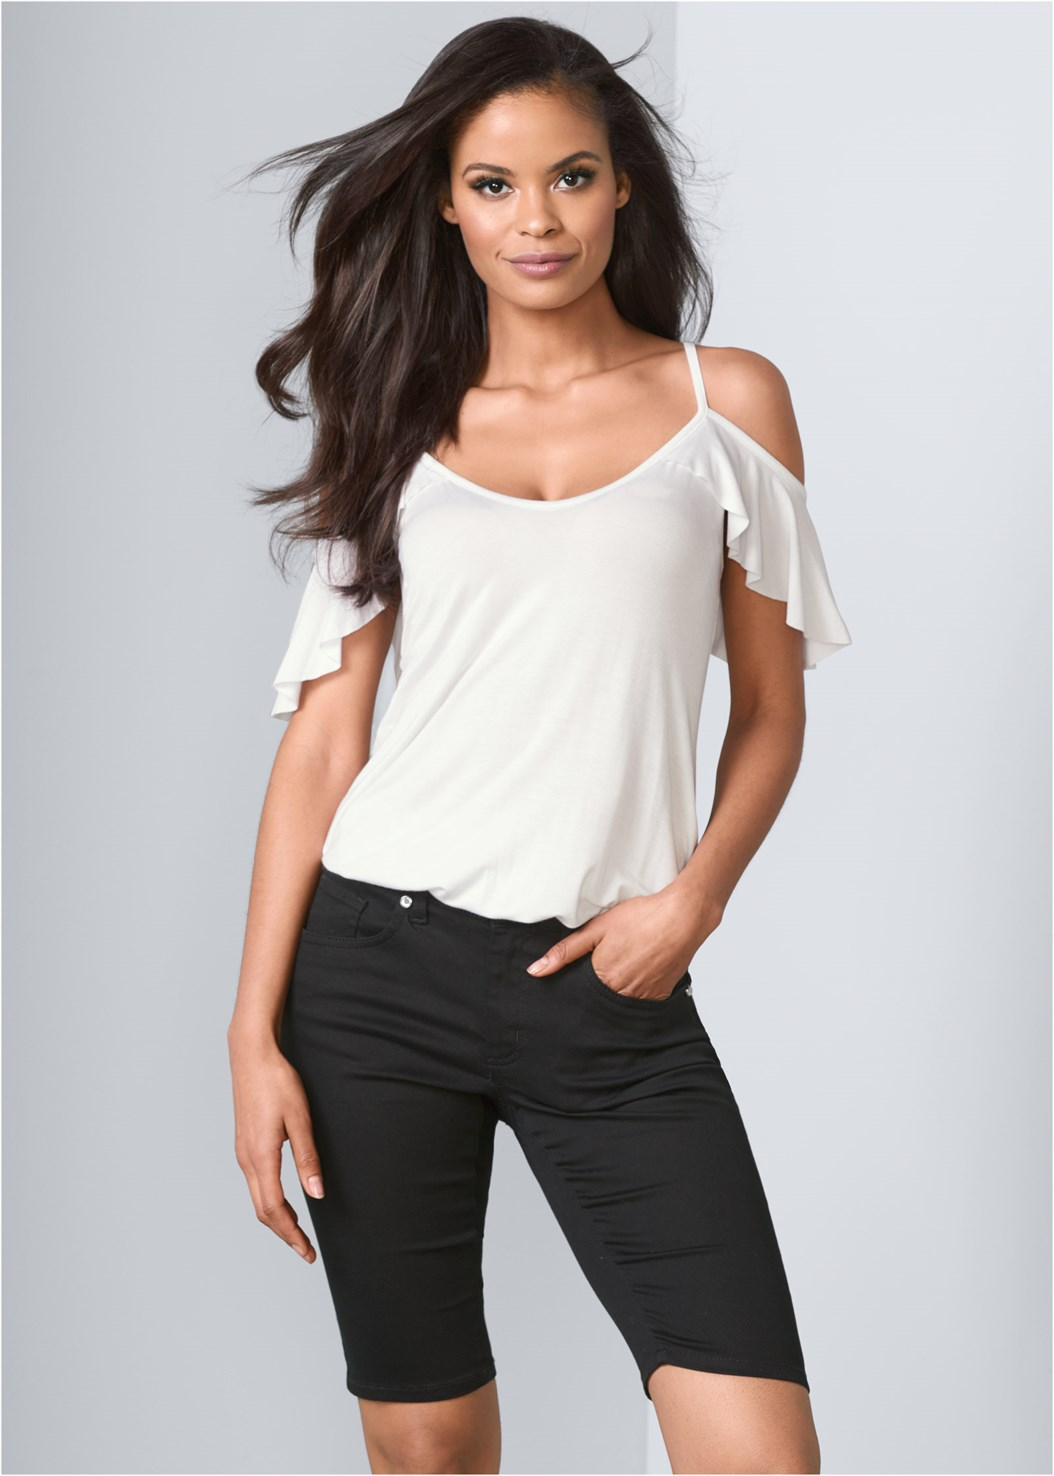 Bermuda Shorts,Ruffle Cold Shoulder Top